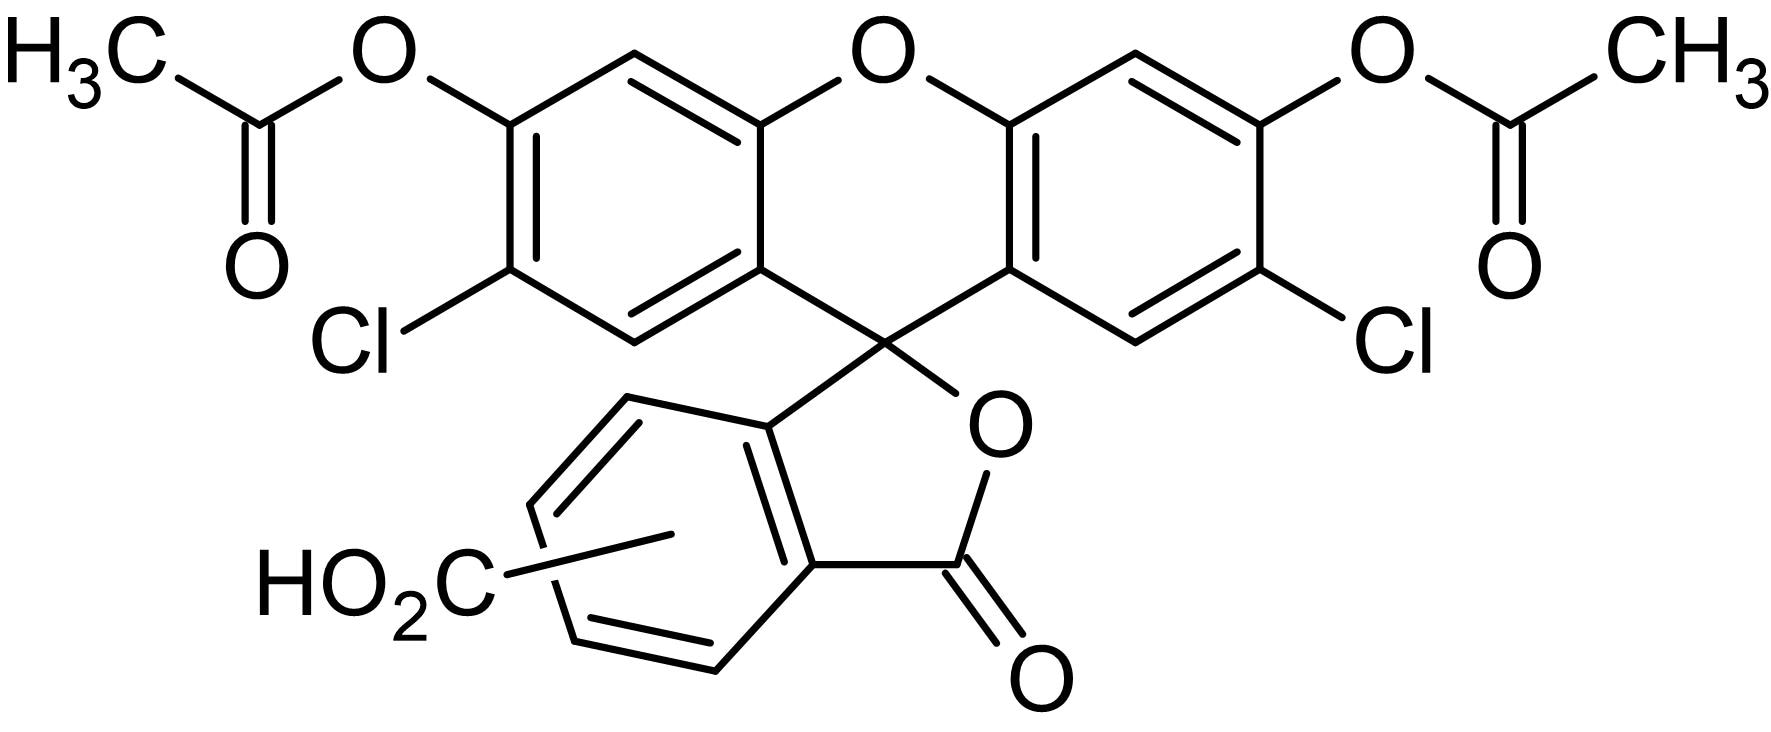 Chemical Structure - DFCA DA (5(6)-Carboxy-2',7'-dichlorofluorescein diacetate), Fluorogenic esterase substrate (ab145415)